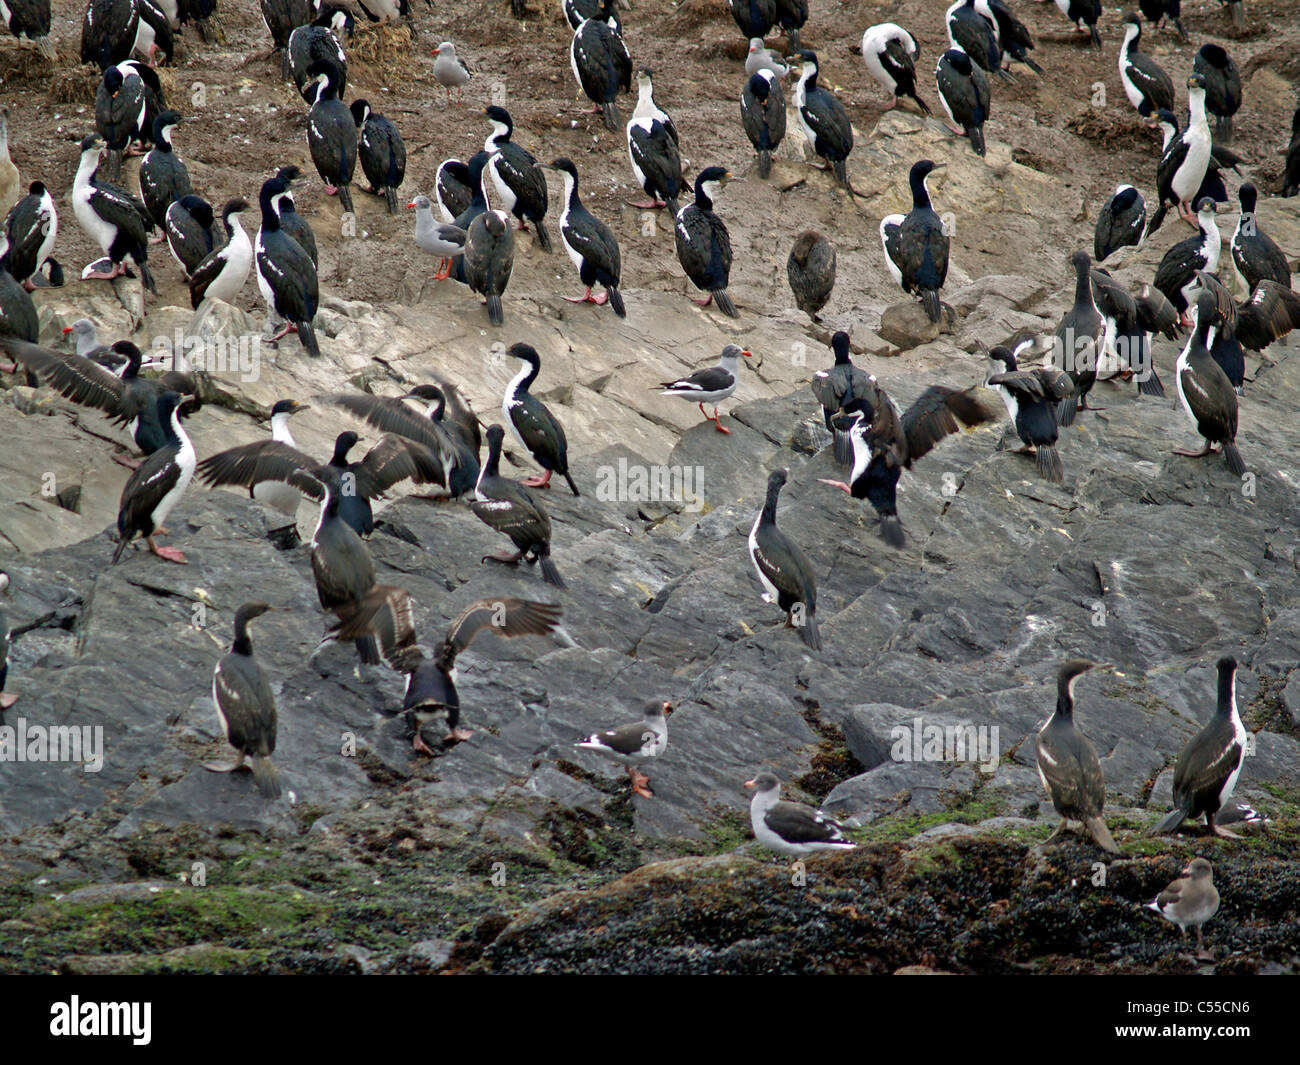 Blue-eyed or King cormorants Beagle Channel Argentina - Stock Image